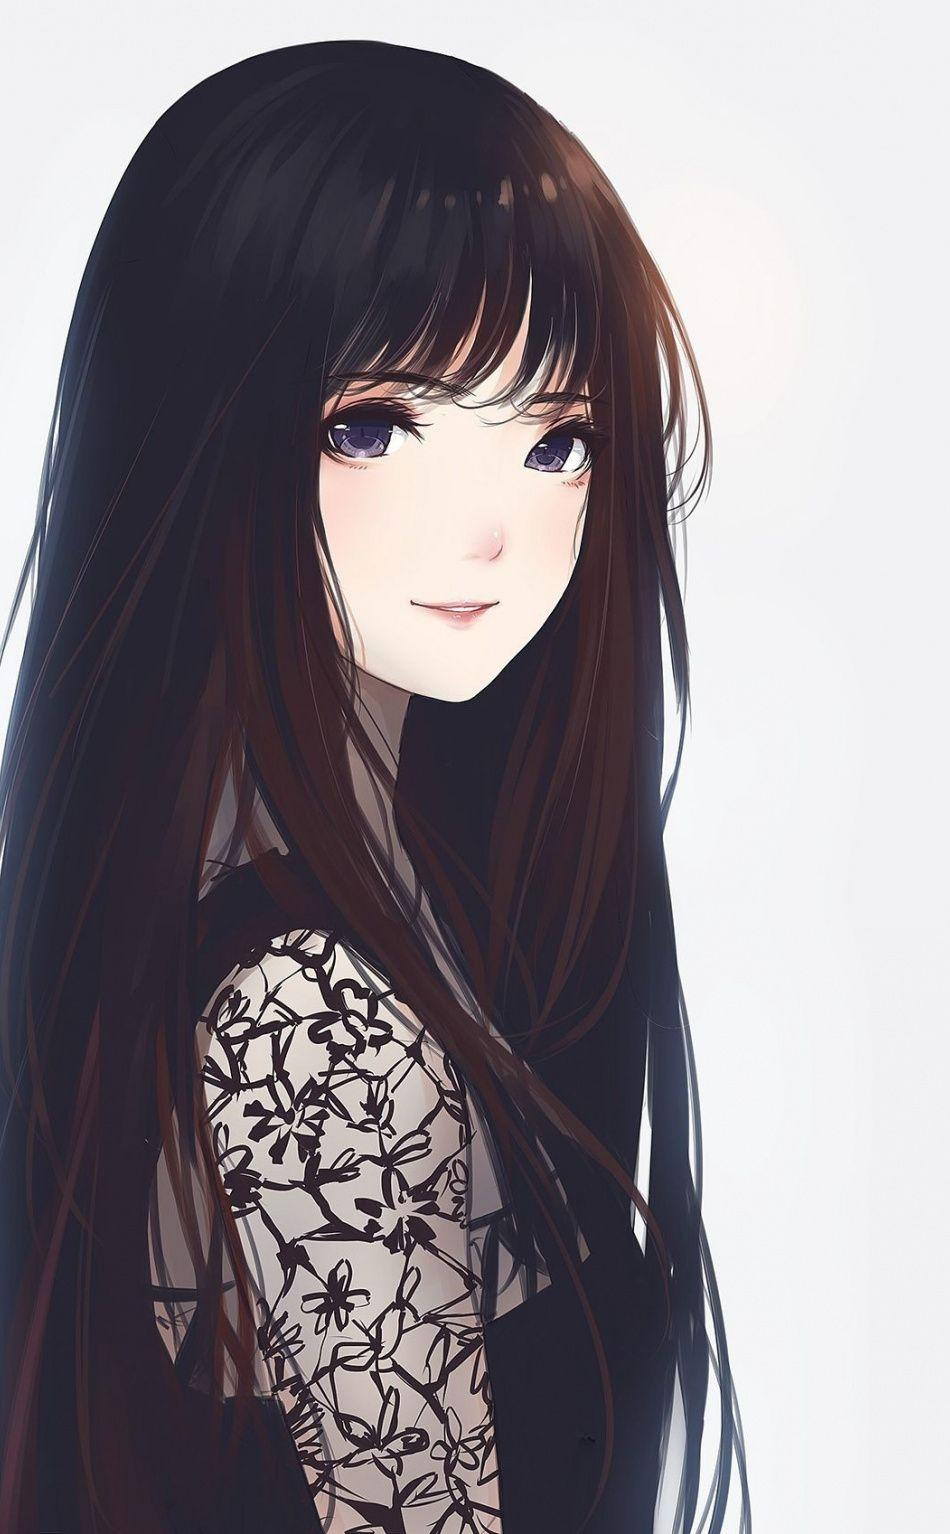 Top 10 Anime Girls with Long Hair [Best List]